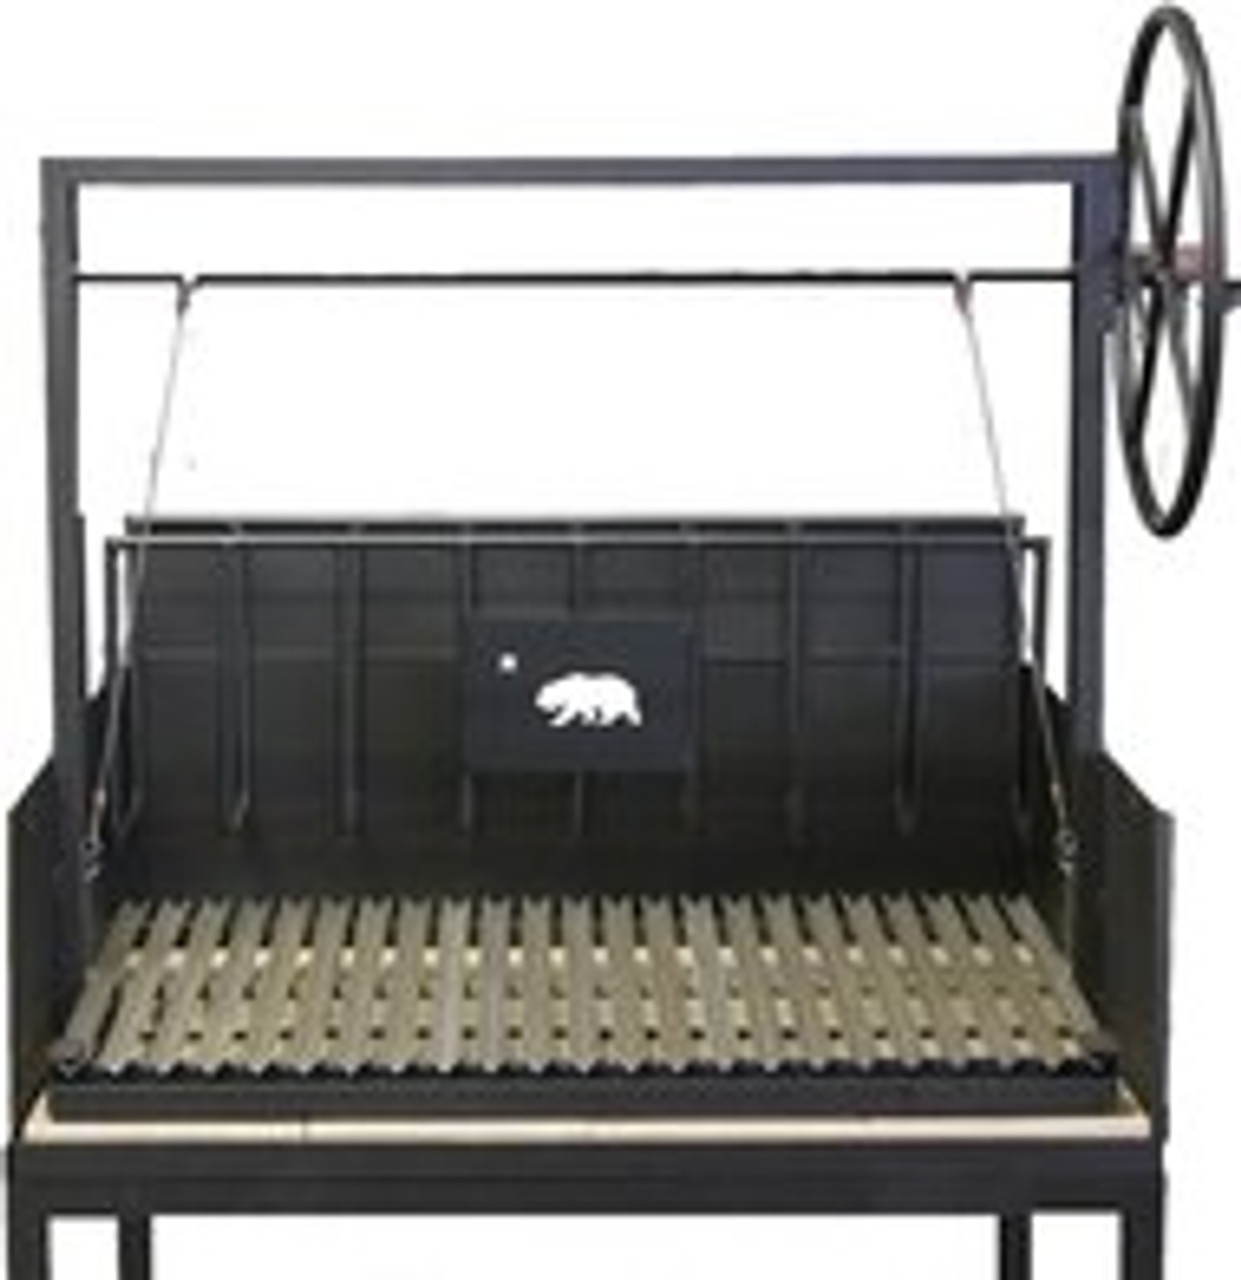 Argentine Counter Drop in Grills with a Firebox and a Rear Brasero